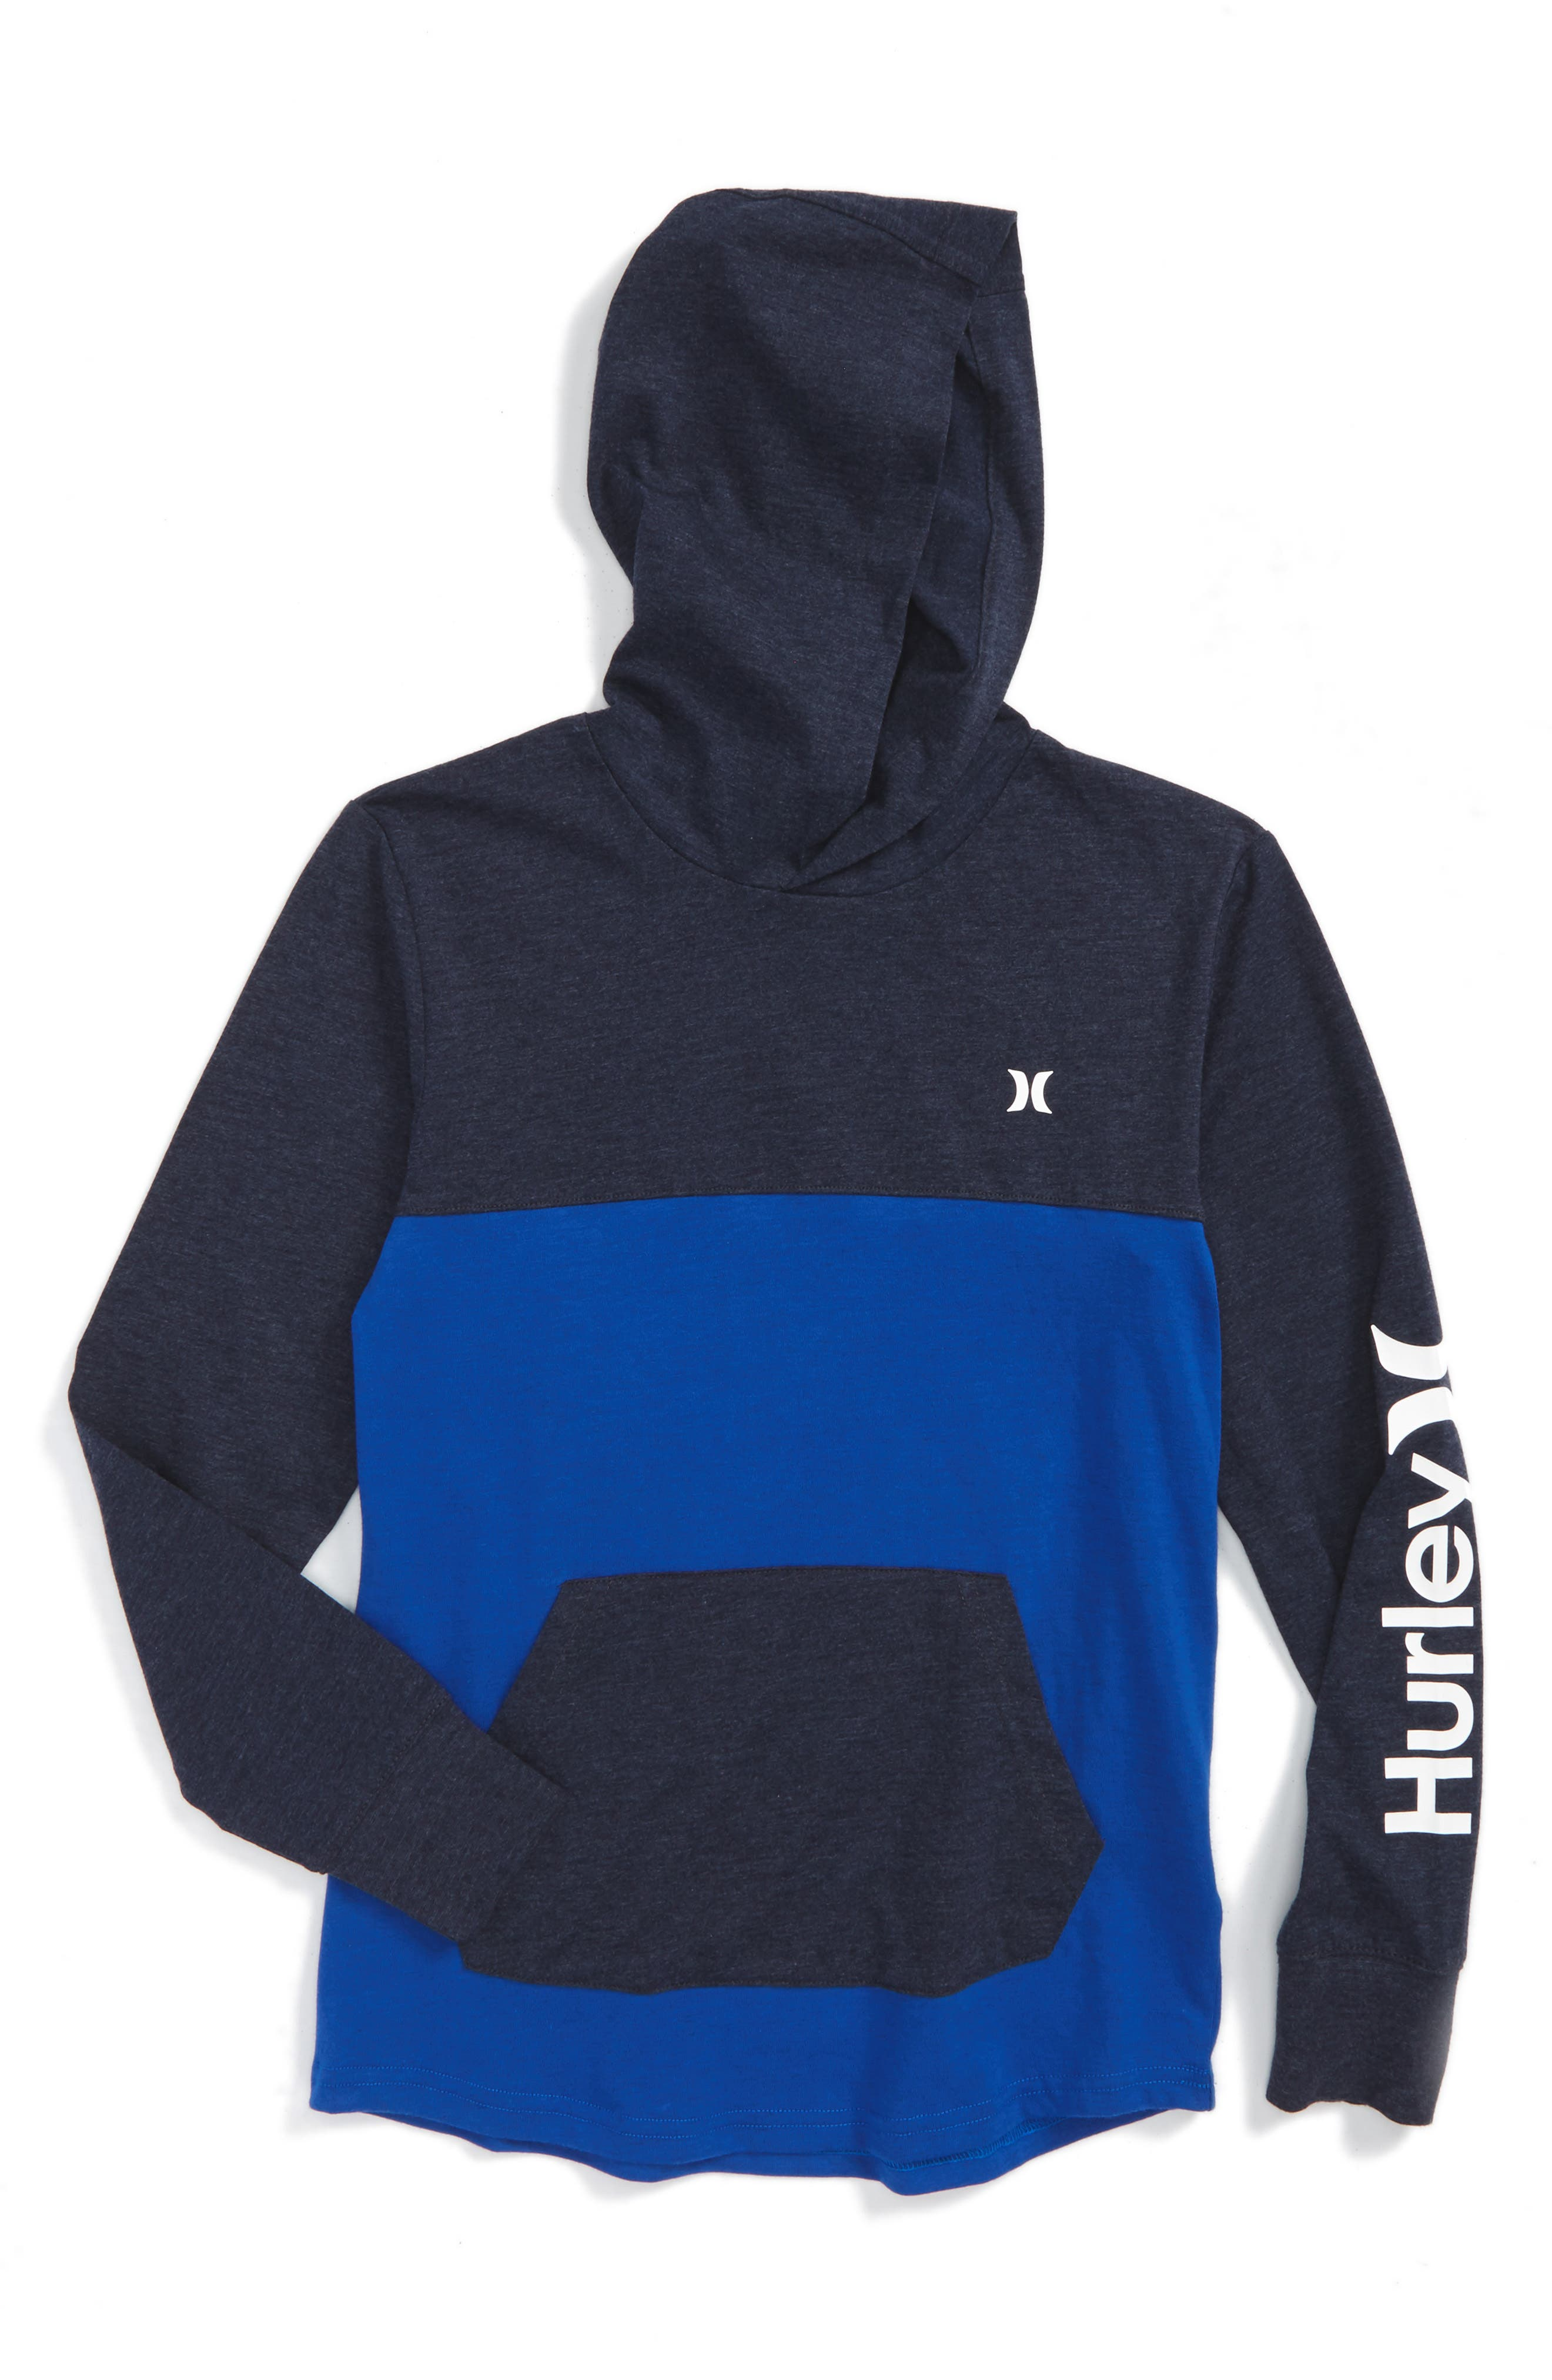 Lagos Dri-FIT Colorblocked Pullover Hoodie,                             Main thumbnail 1, color,                             Obsidian Heather